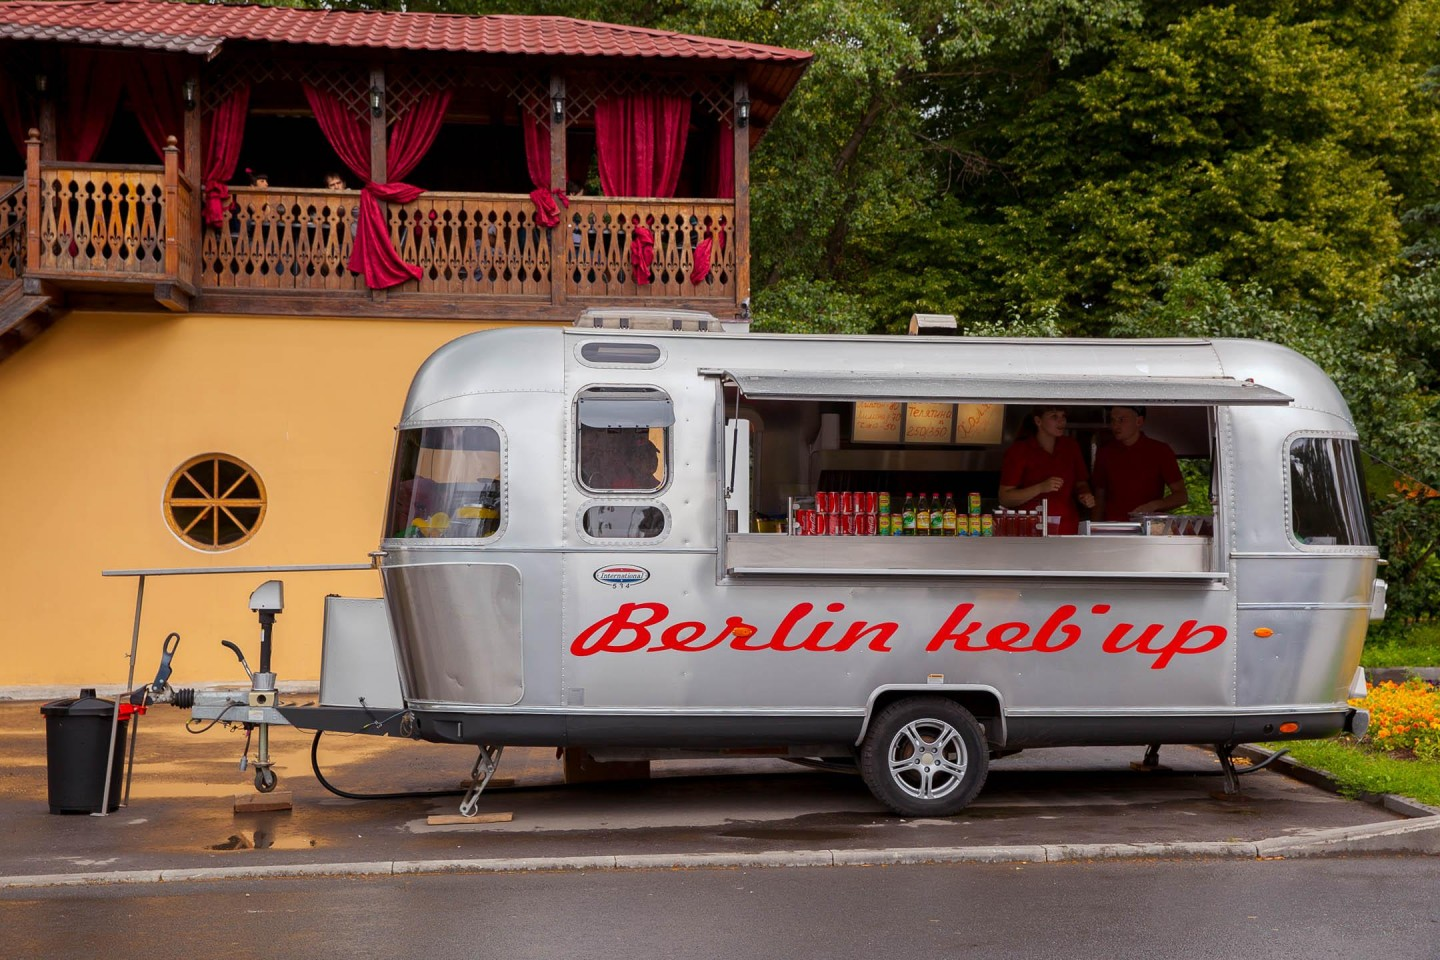 Фургон Berlin Keb'up, ВДНХ, Москва — ParkSeason